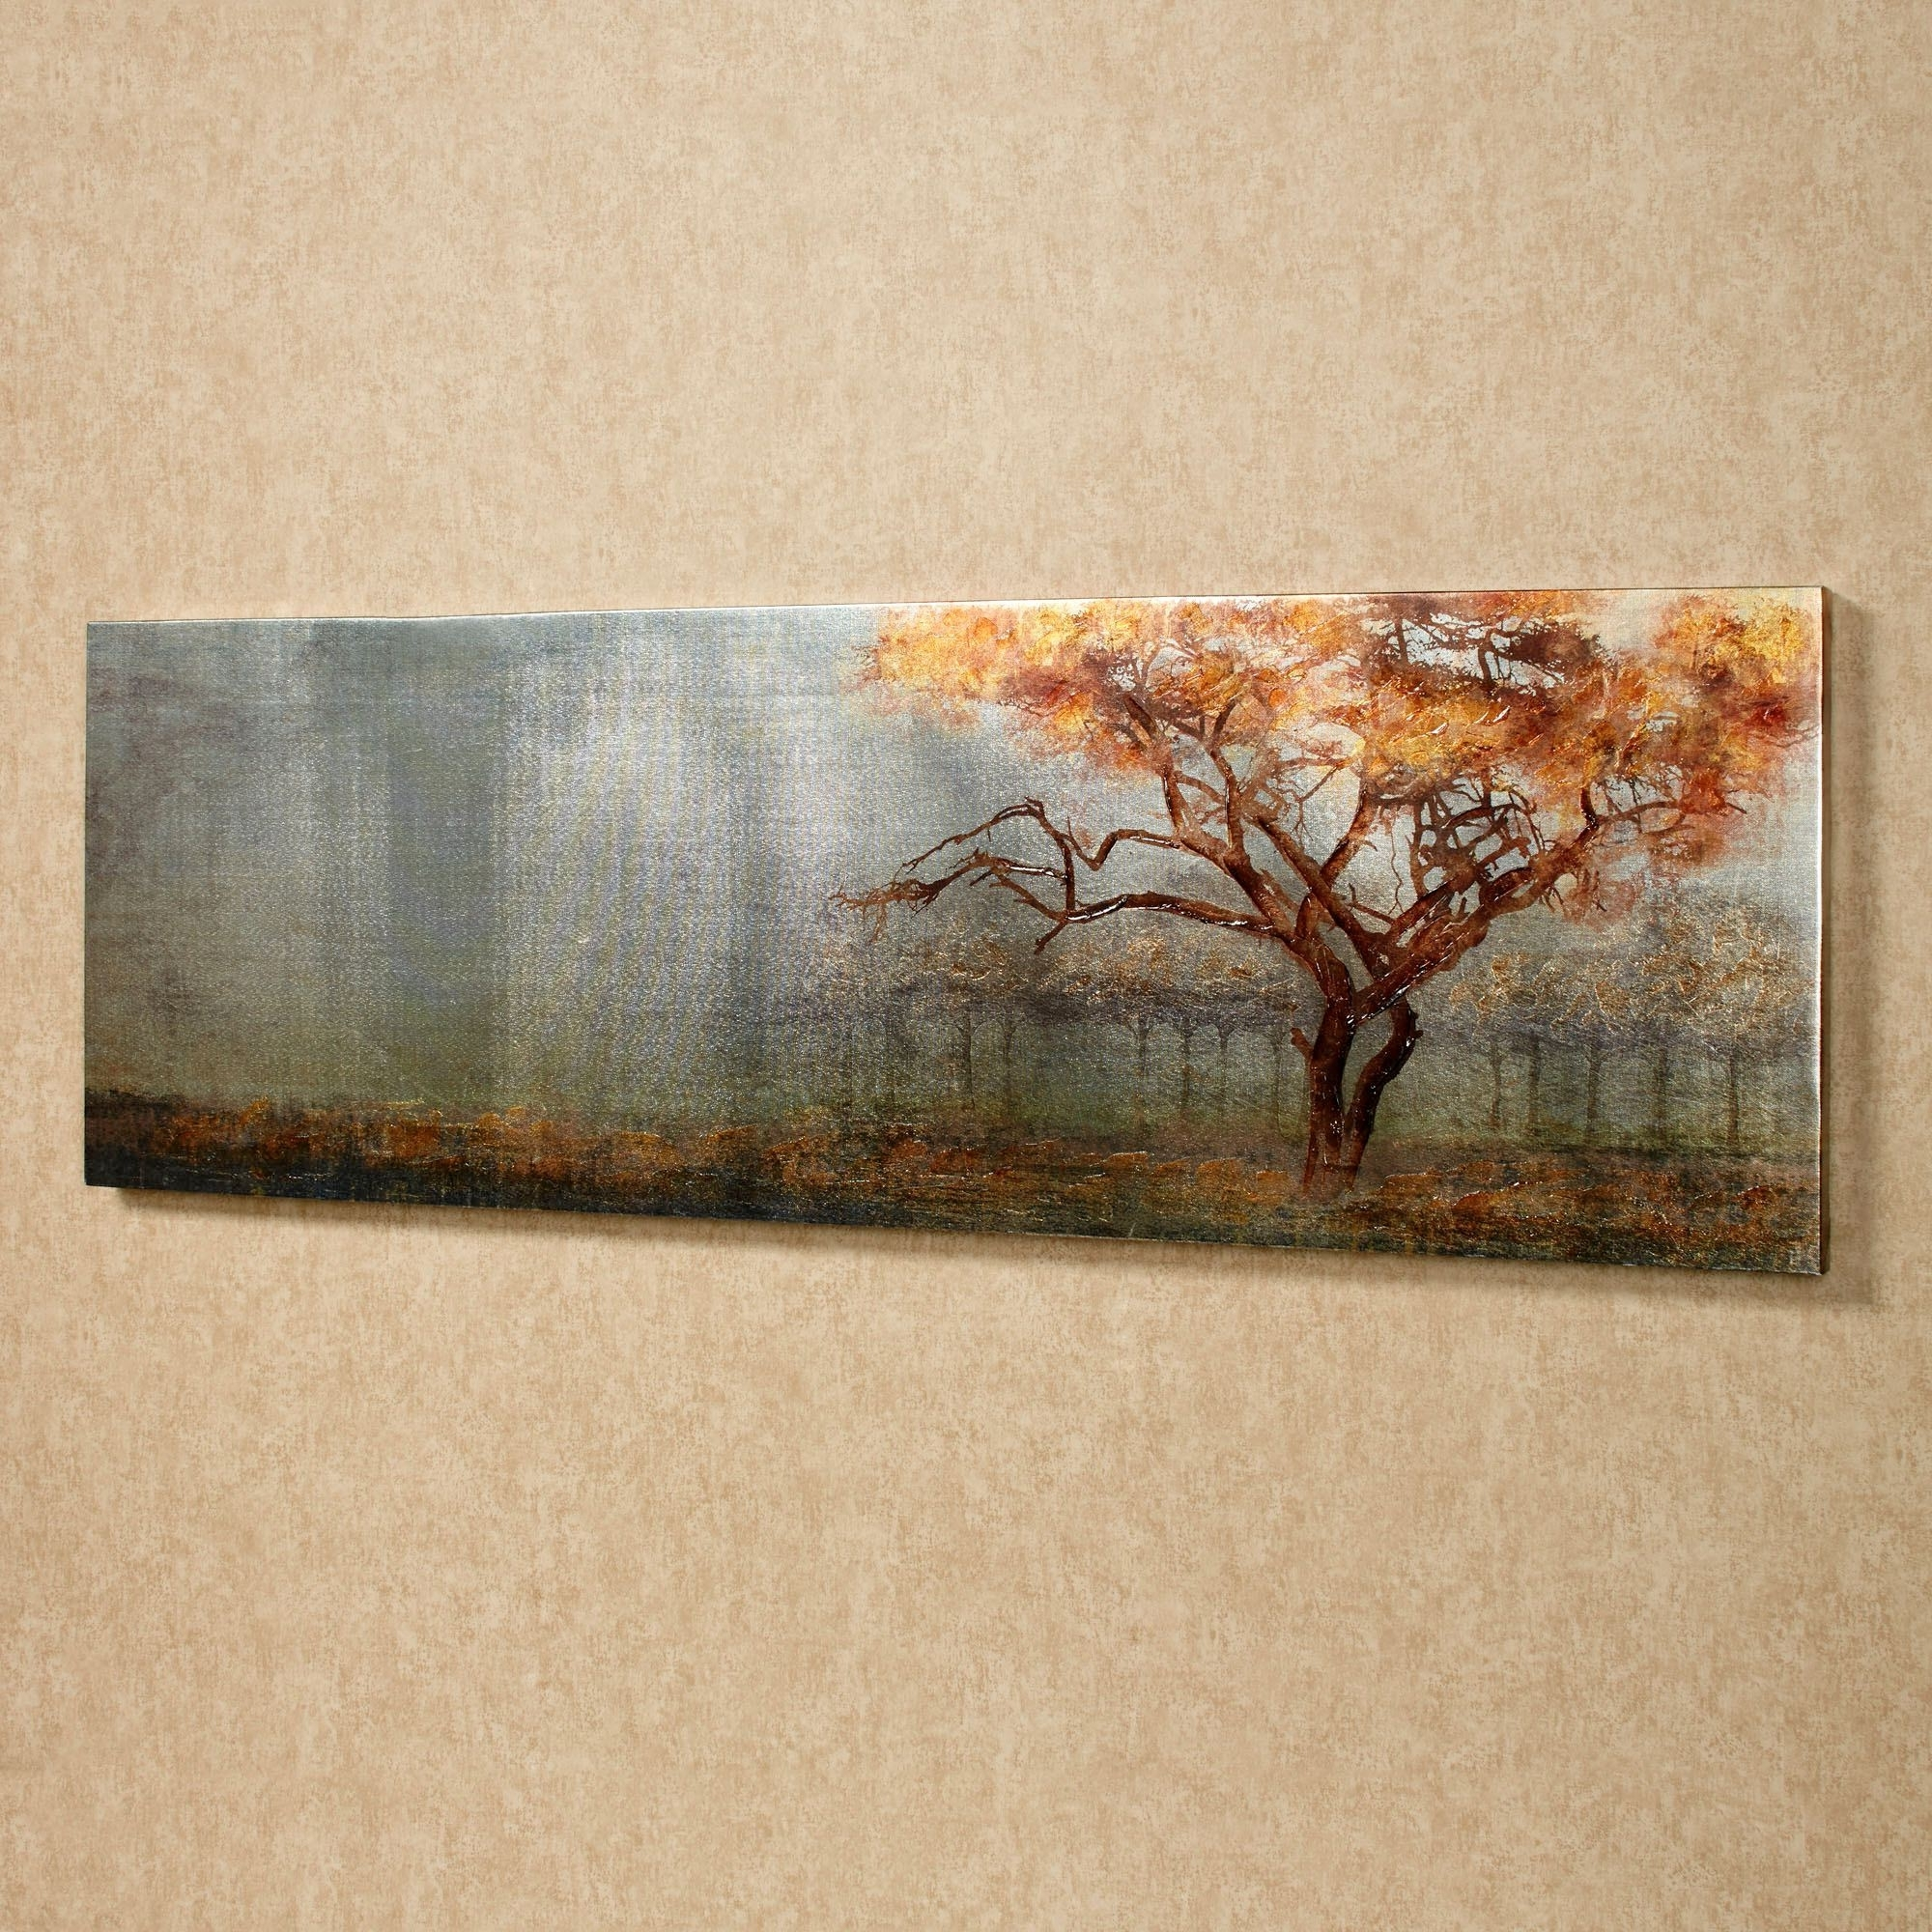 Most Popular Serengeti Tree Canvas Wall Art For Canvas Wall Art Of Trees (View 7 of 15)